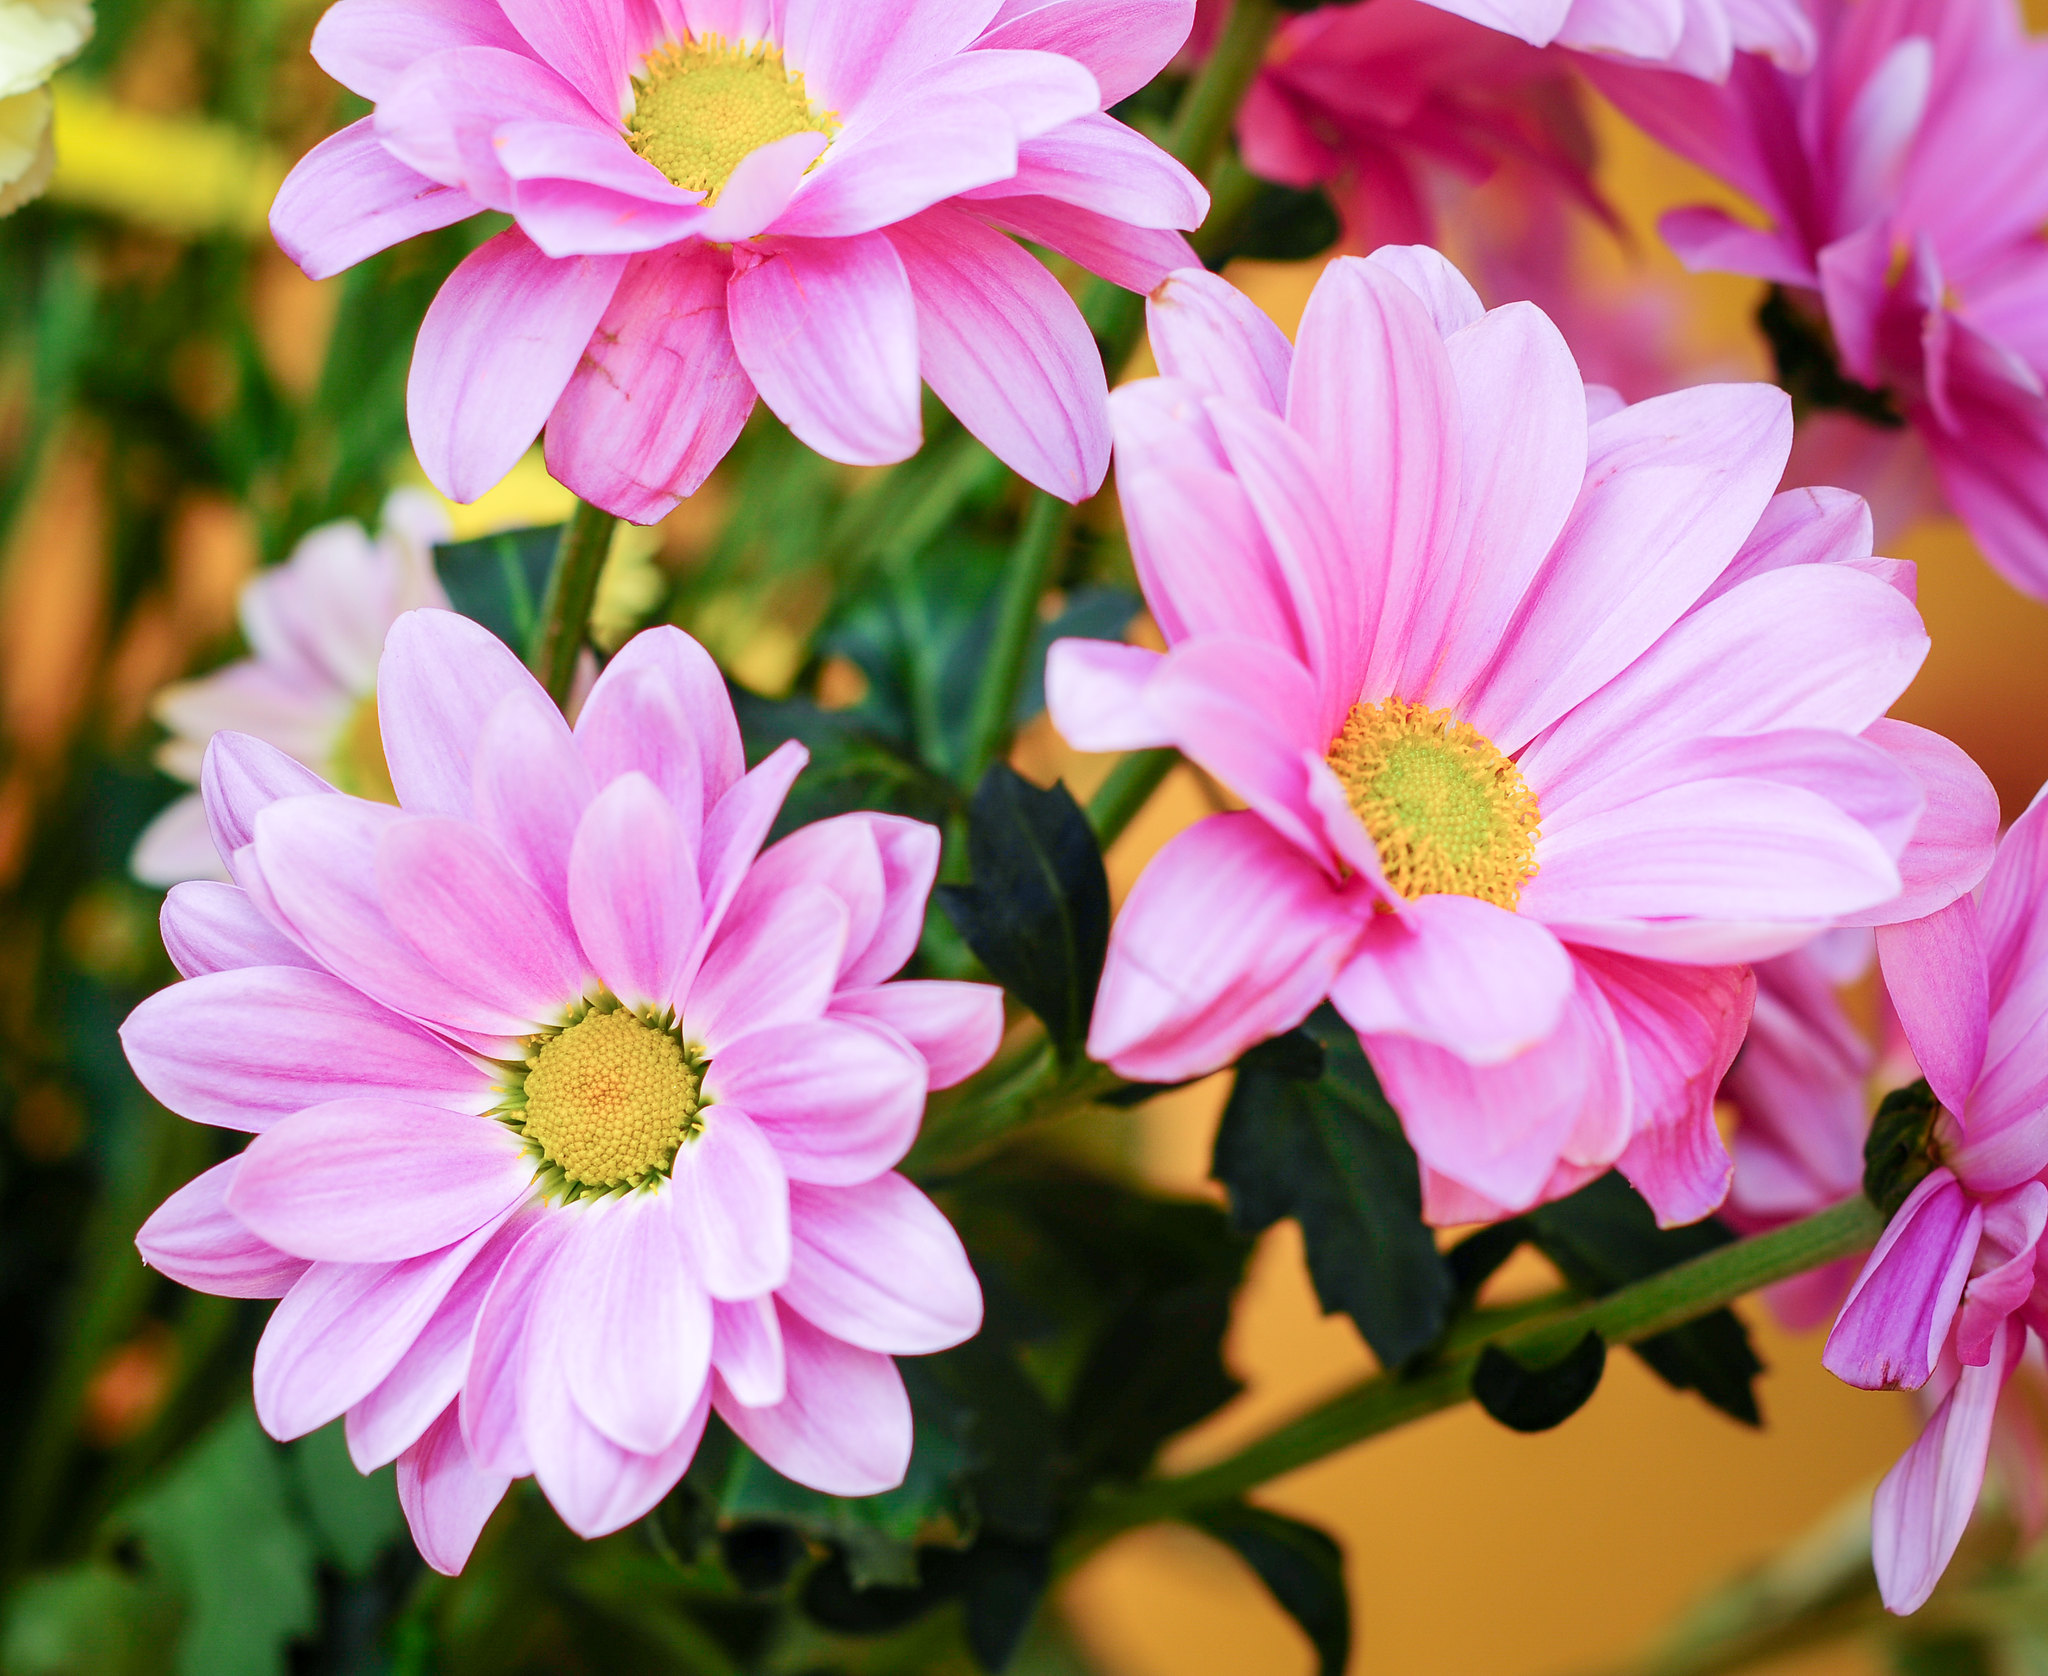 Pink Flowers With Yellow Centres-2